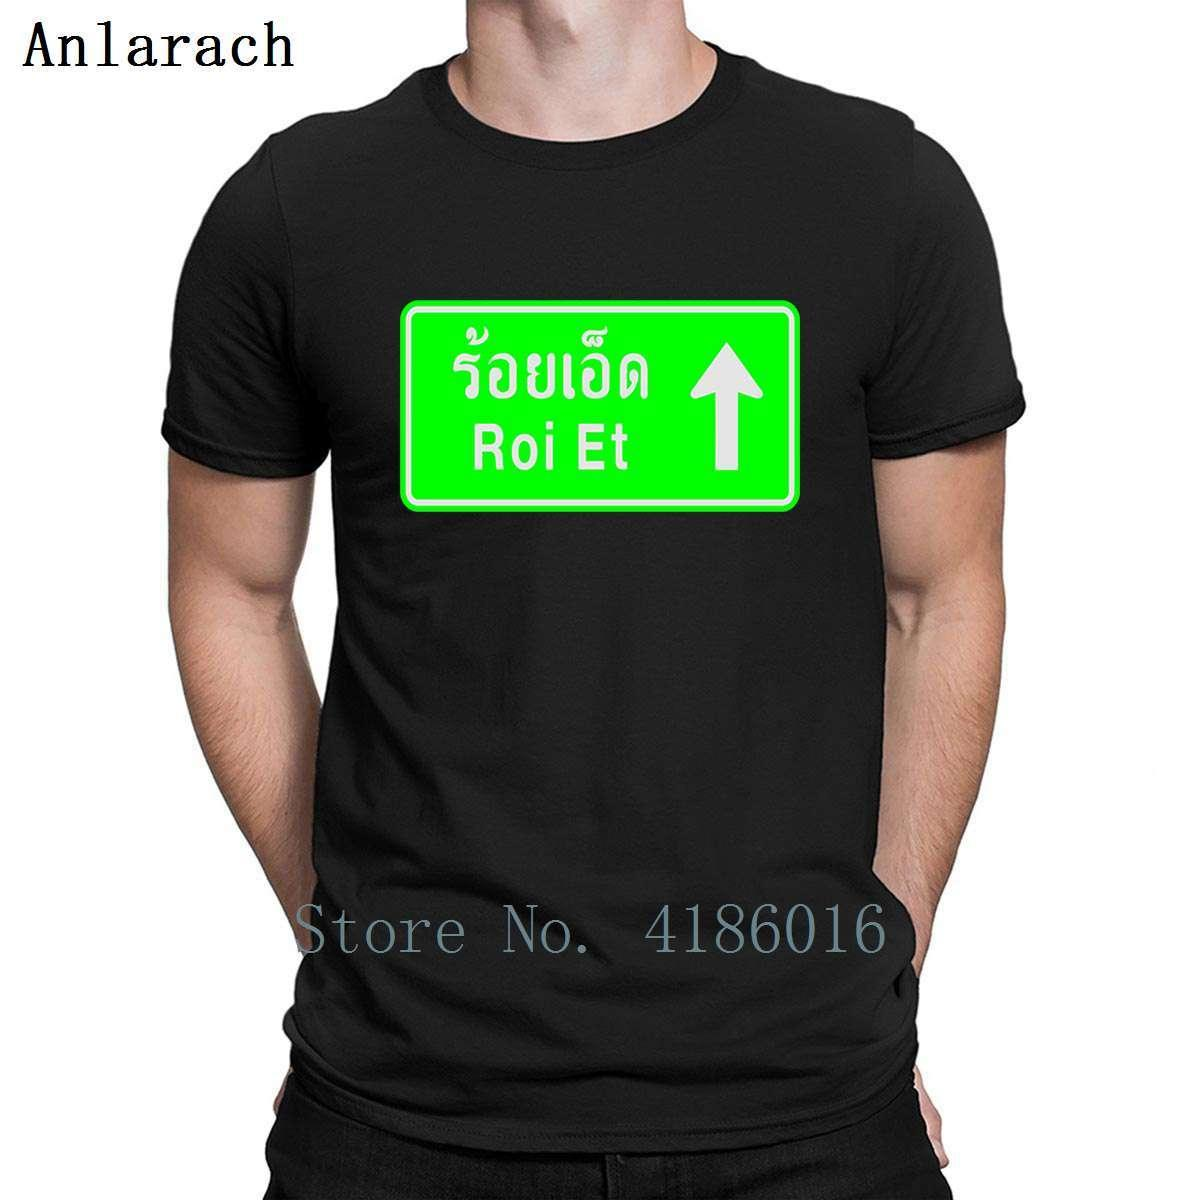 Roi Et Thailand Highway Road Traffic Sign T Shirt Humor Summer Family Size S-5xl Fit Cotton Print Solid Color Shirt